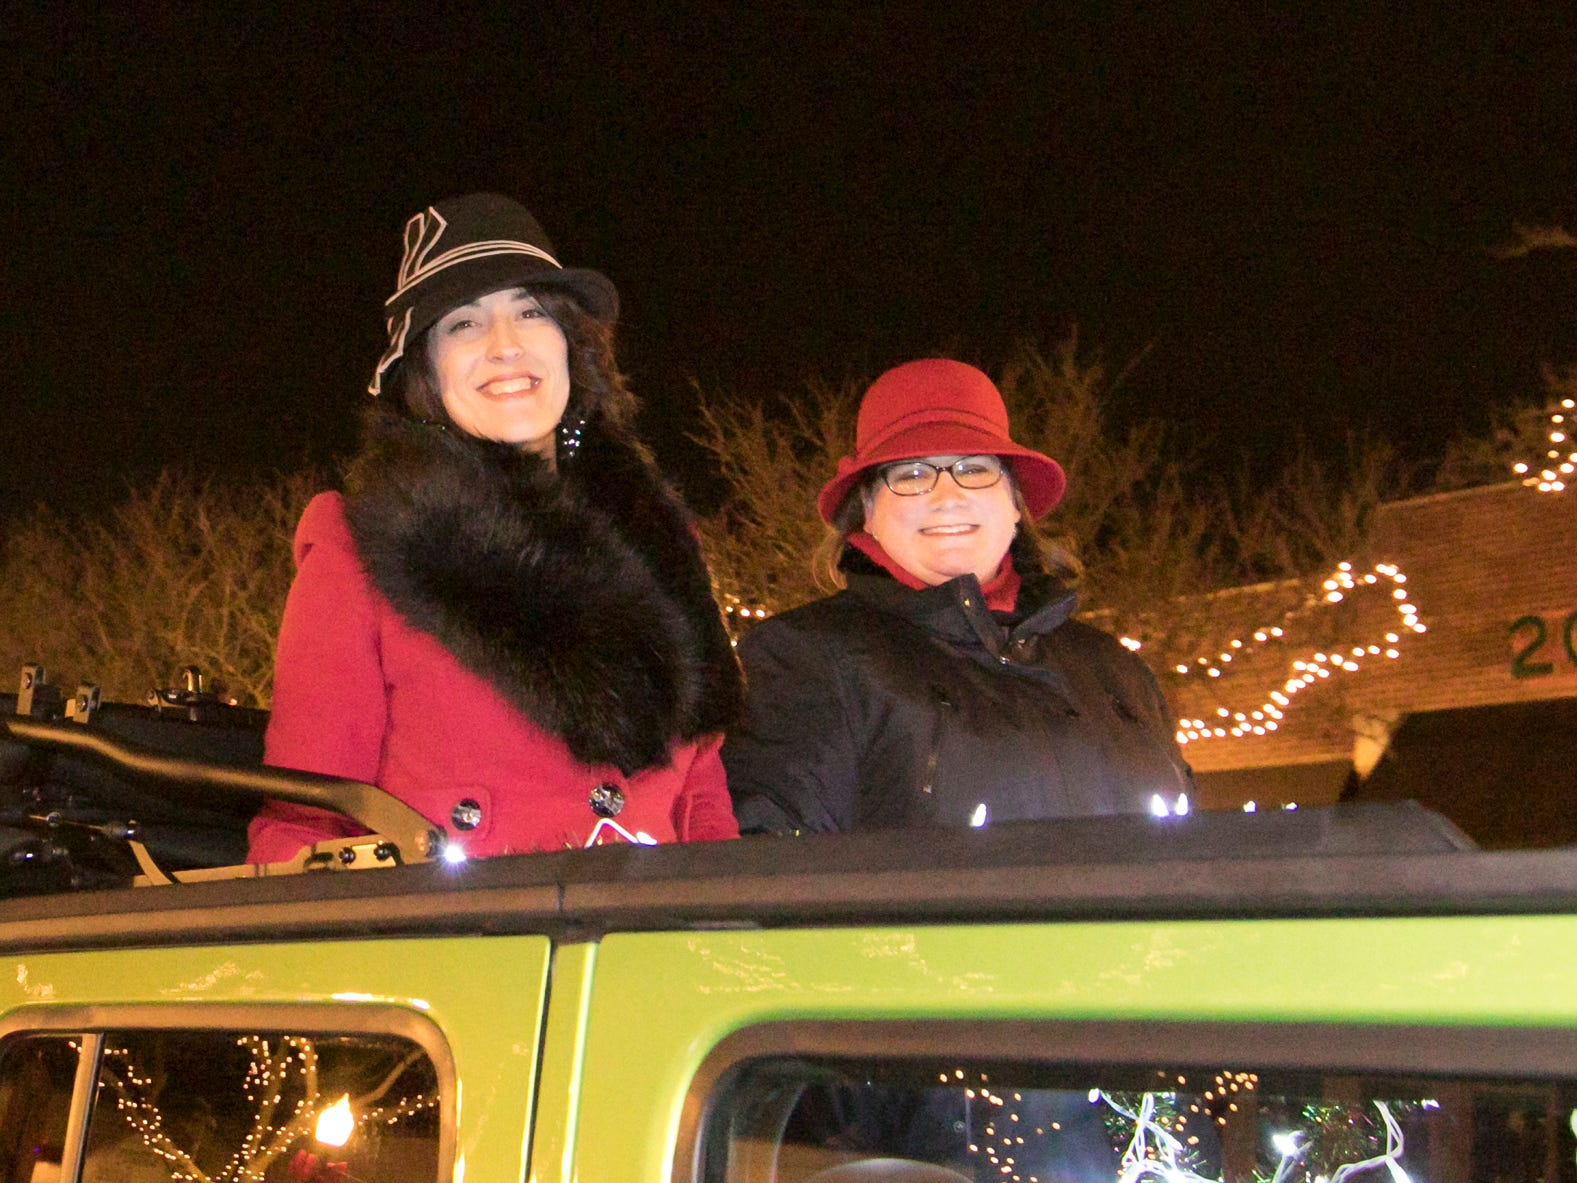 Howell Main Street director Cathleen Edgerly, left, and outreach coordinator Kate Litwin, grand marshals of the Fantasy of Lights parade, ride in a Jeep Friday, Nov. 23, 2018.